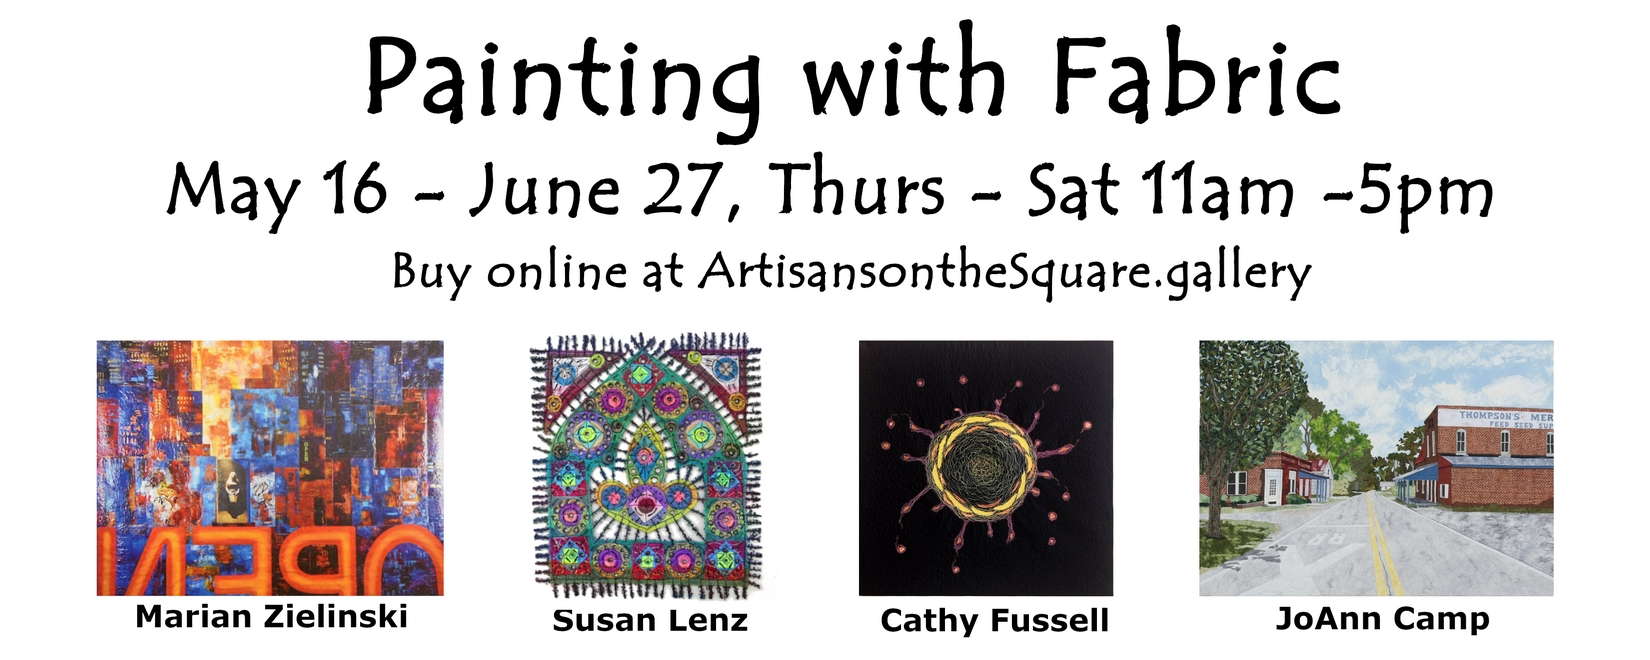 Painting with Fabric is extended till August 29 2020